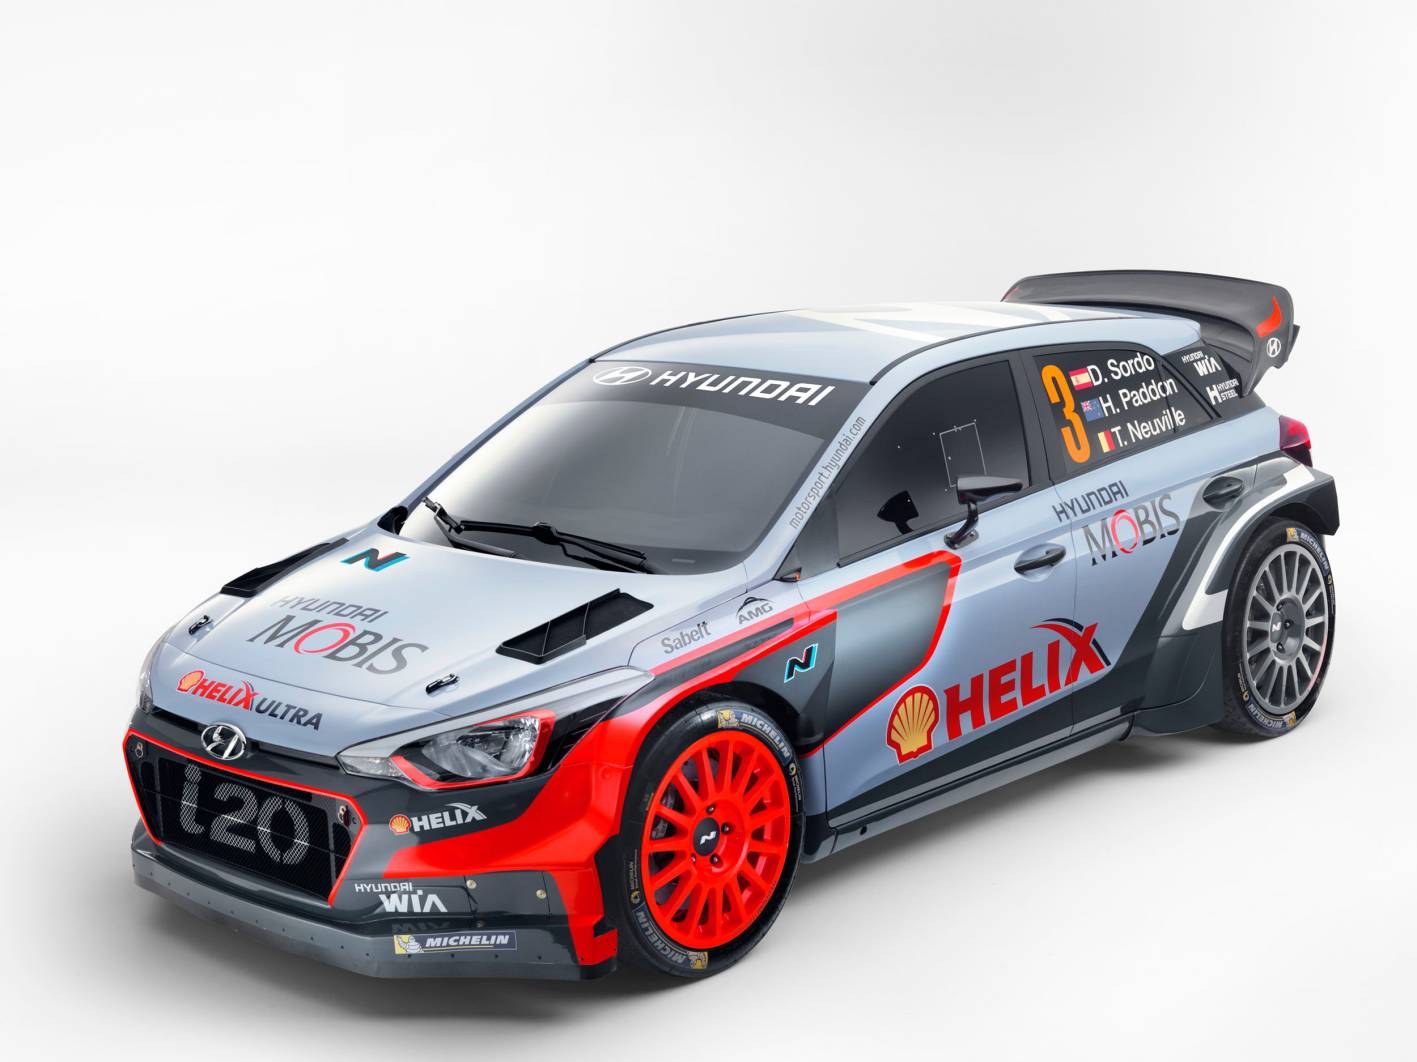 hyundai racing hyundai motorsport unveils new i20 wrc for 2016 season. Black Bedroom Furniture Sets. Home Design Ideas